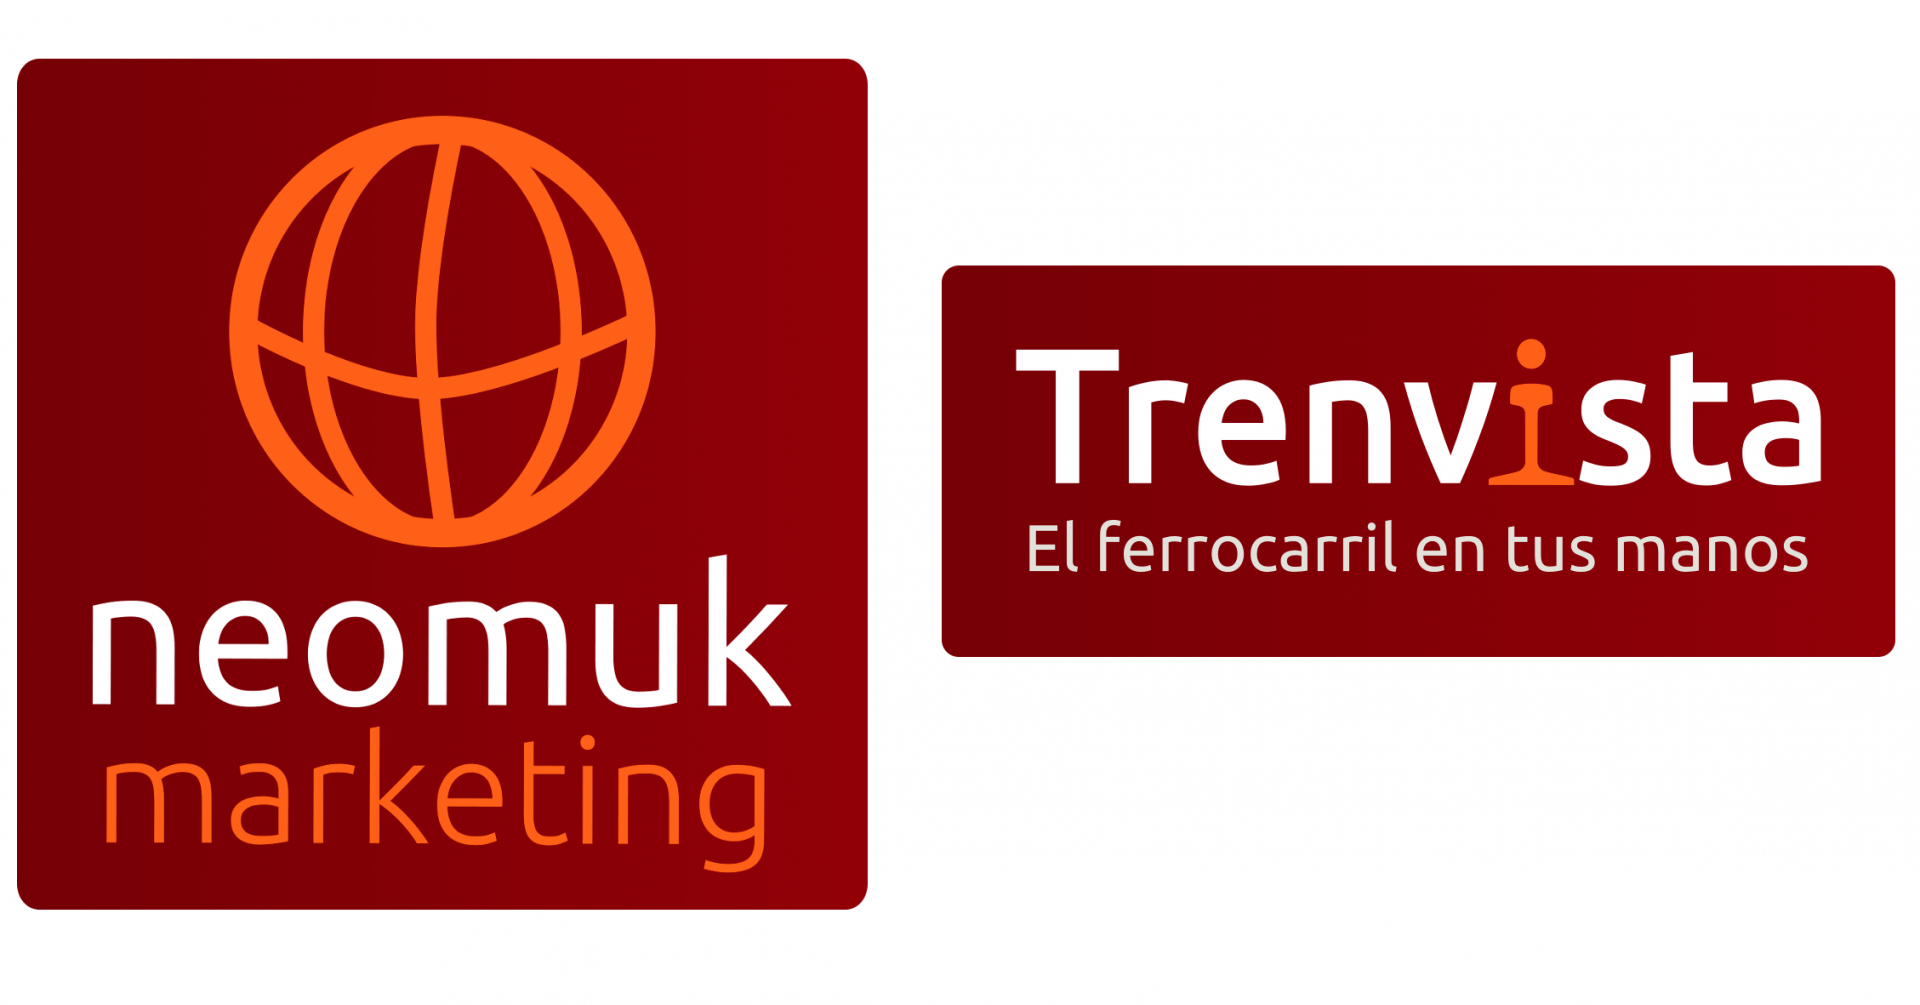 Trenvista pasa a formar parte de Neomuk marketing, agencia de marketing digital en la que Ferro Raíl se ha integrado.